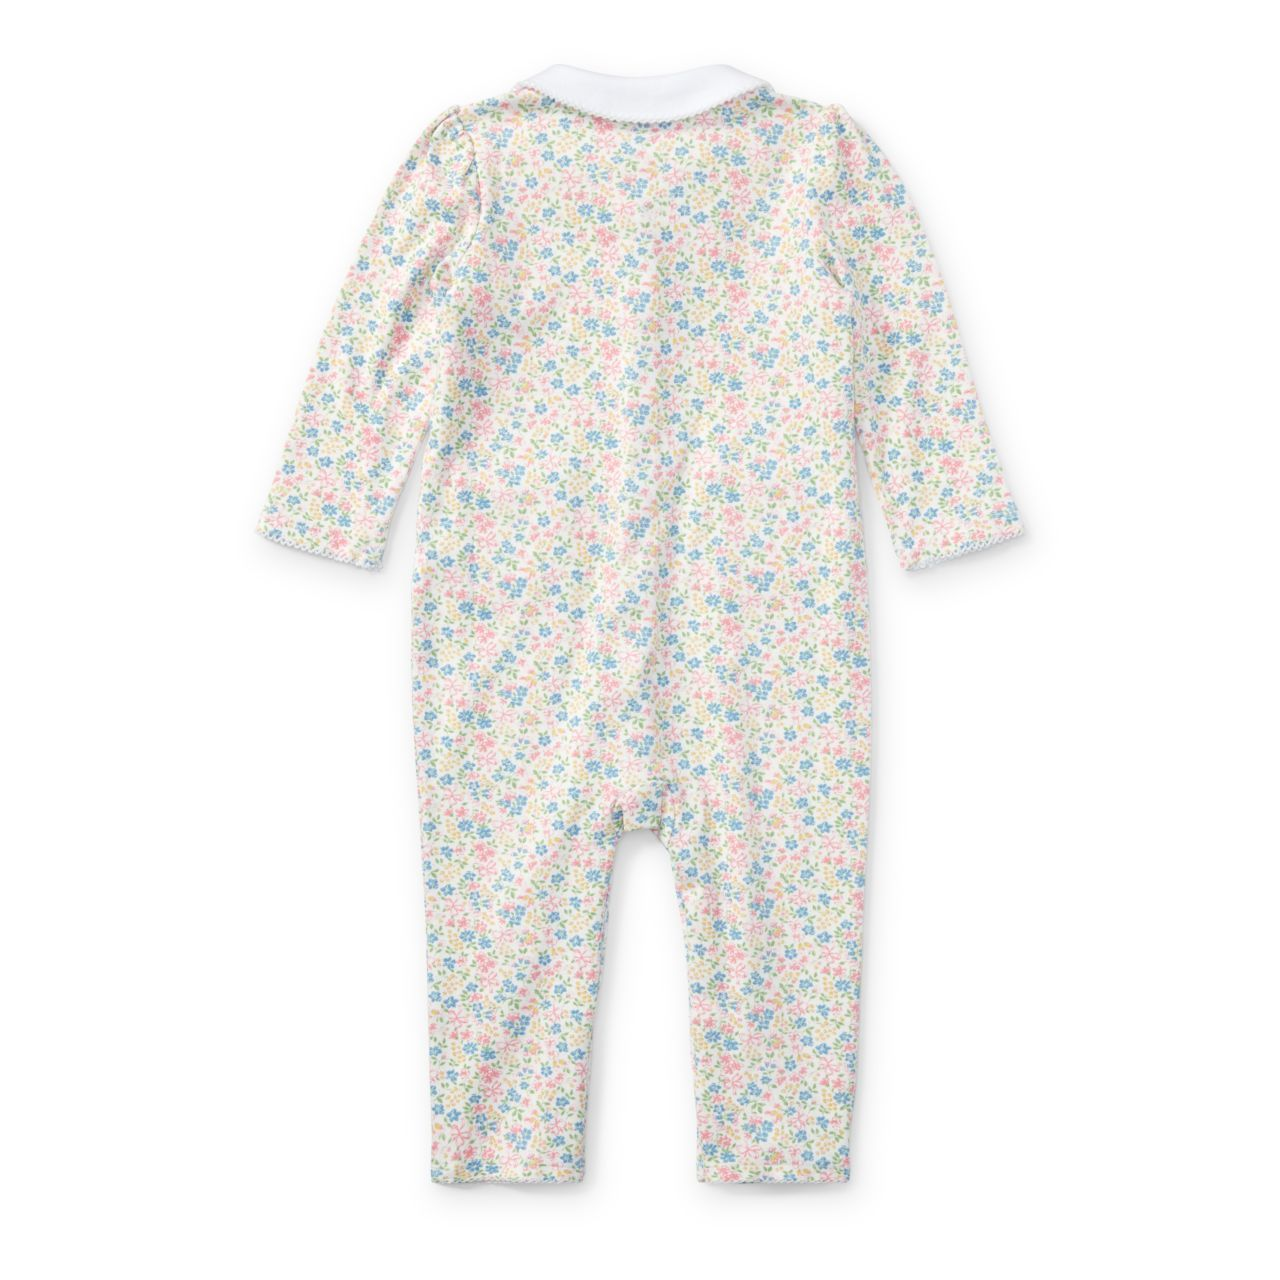 ◎送料込み◎Floral-Print Cotton Coverall